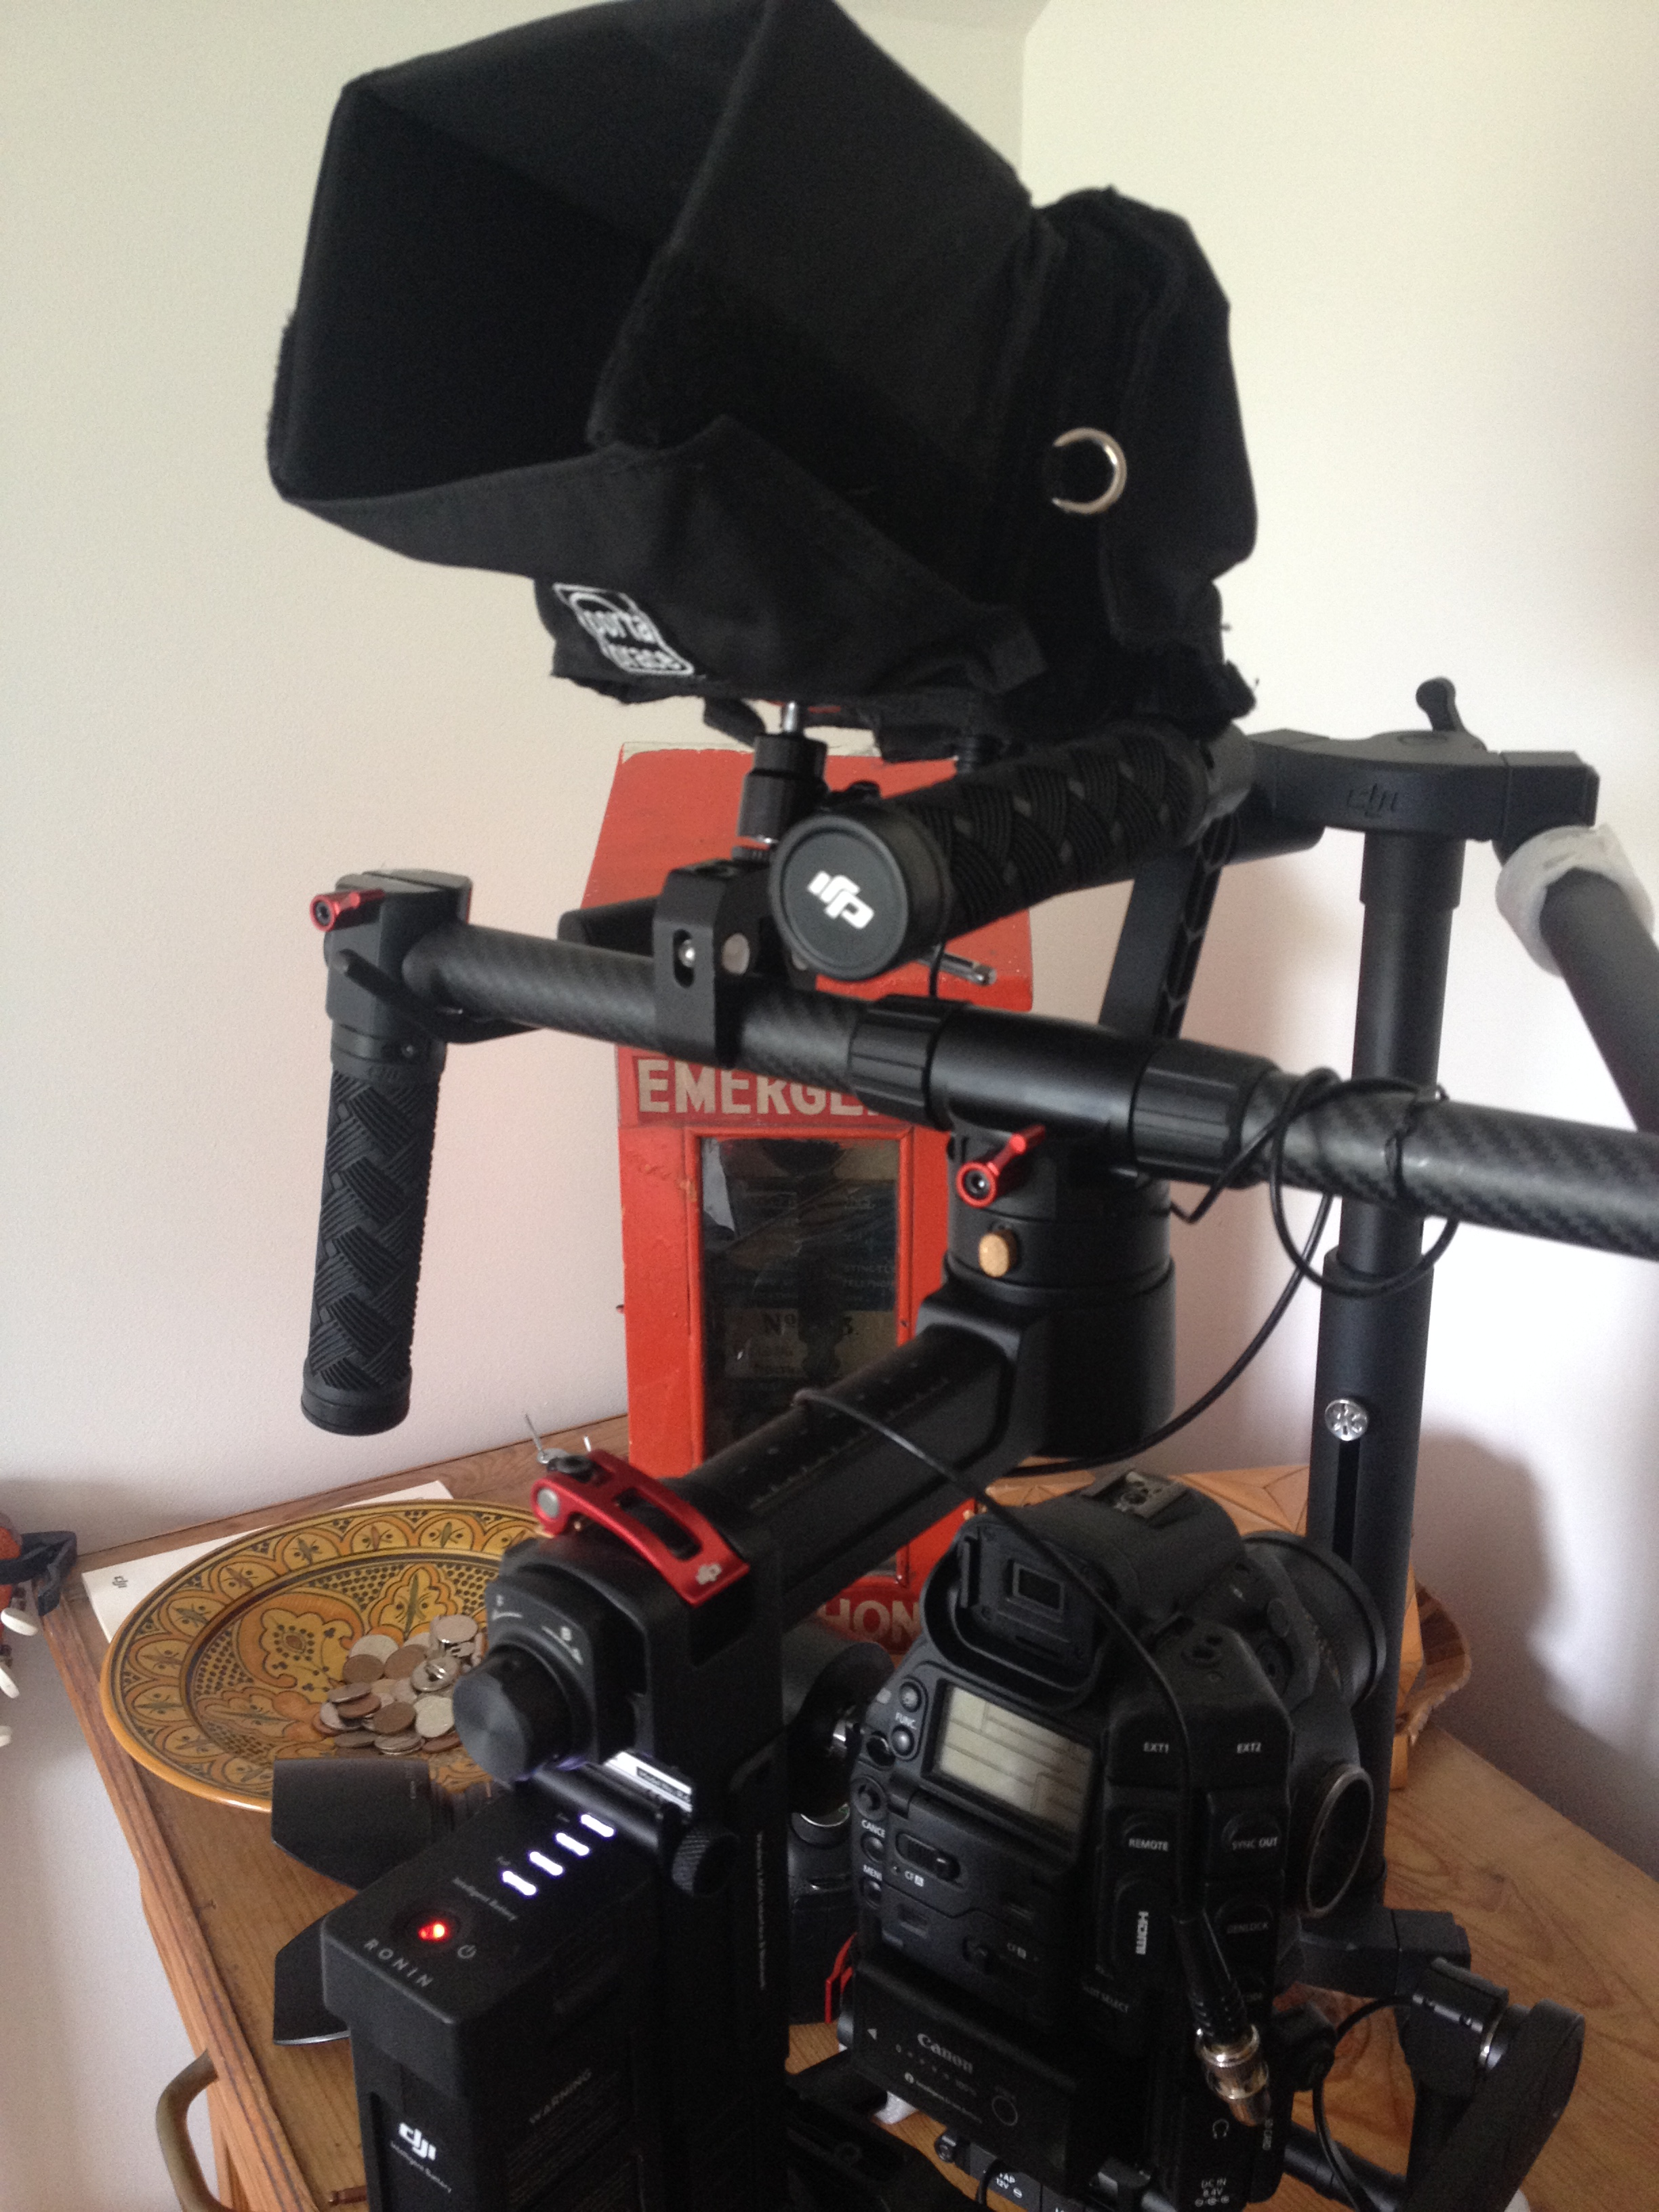 Ronin m C300 with TV logic monitor